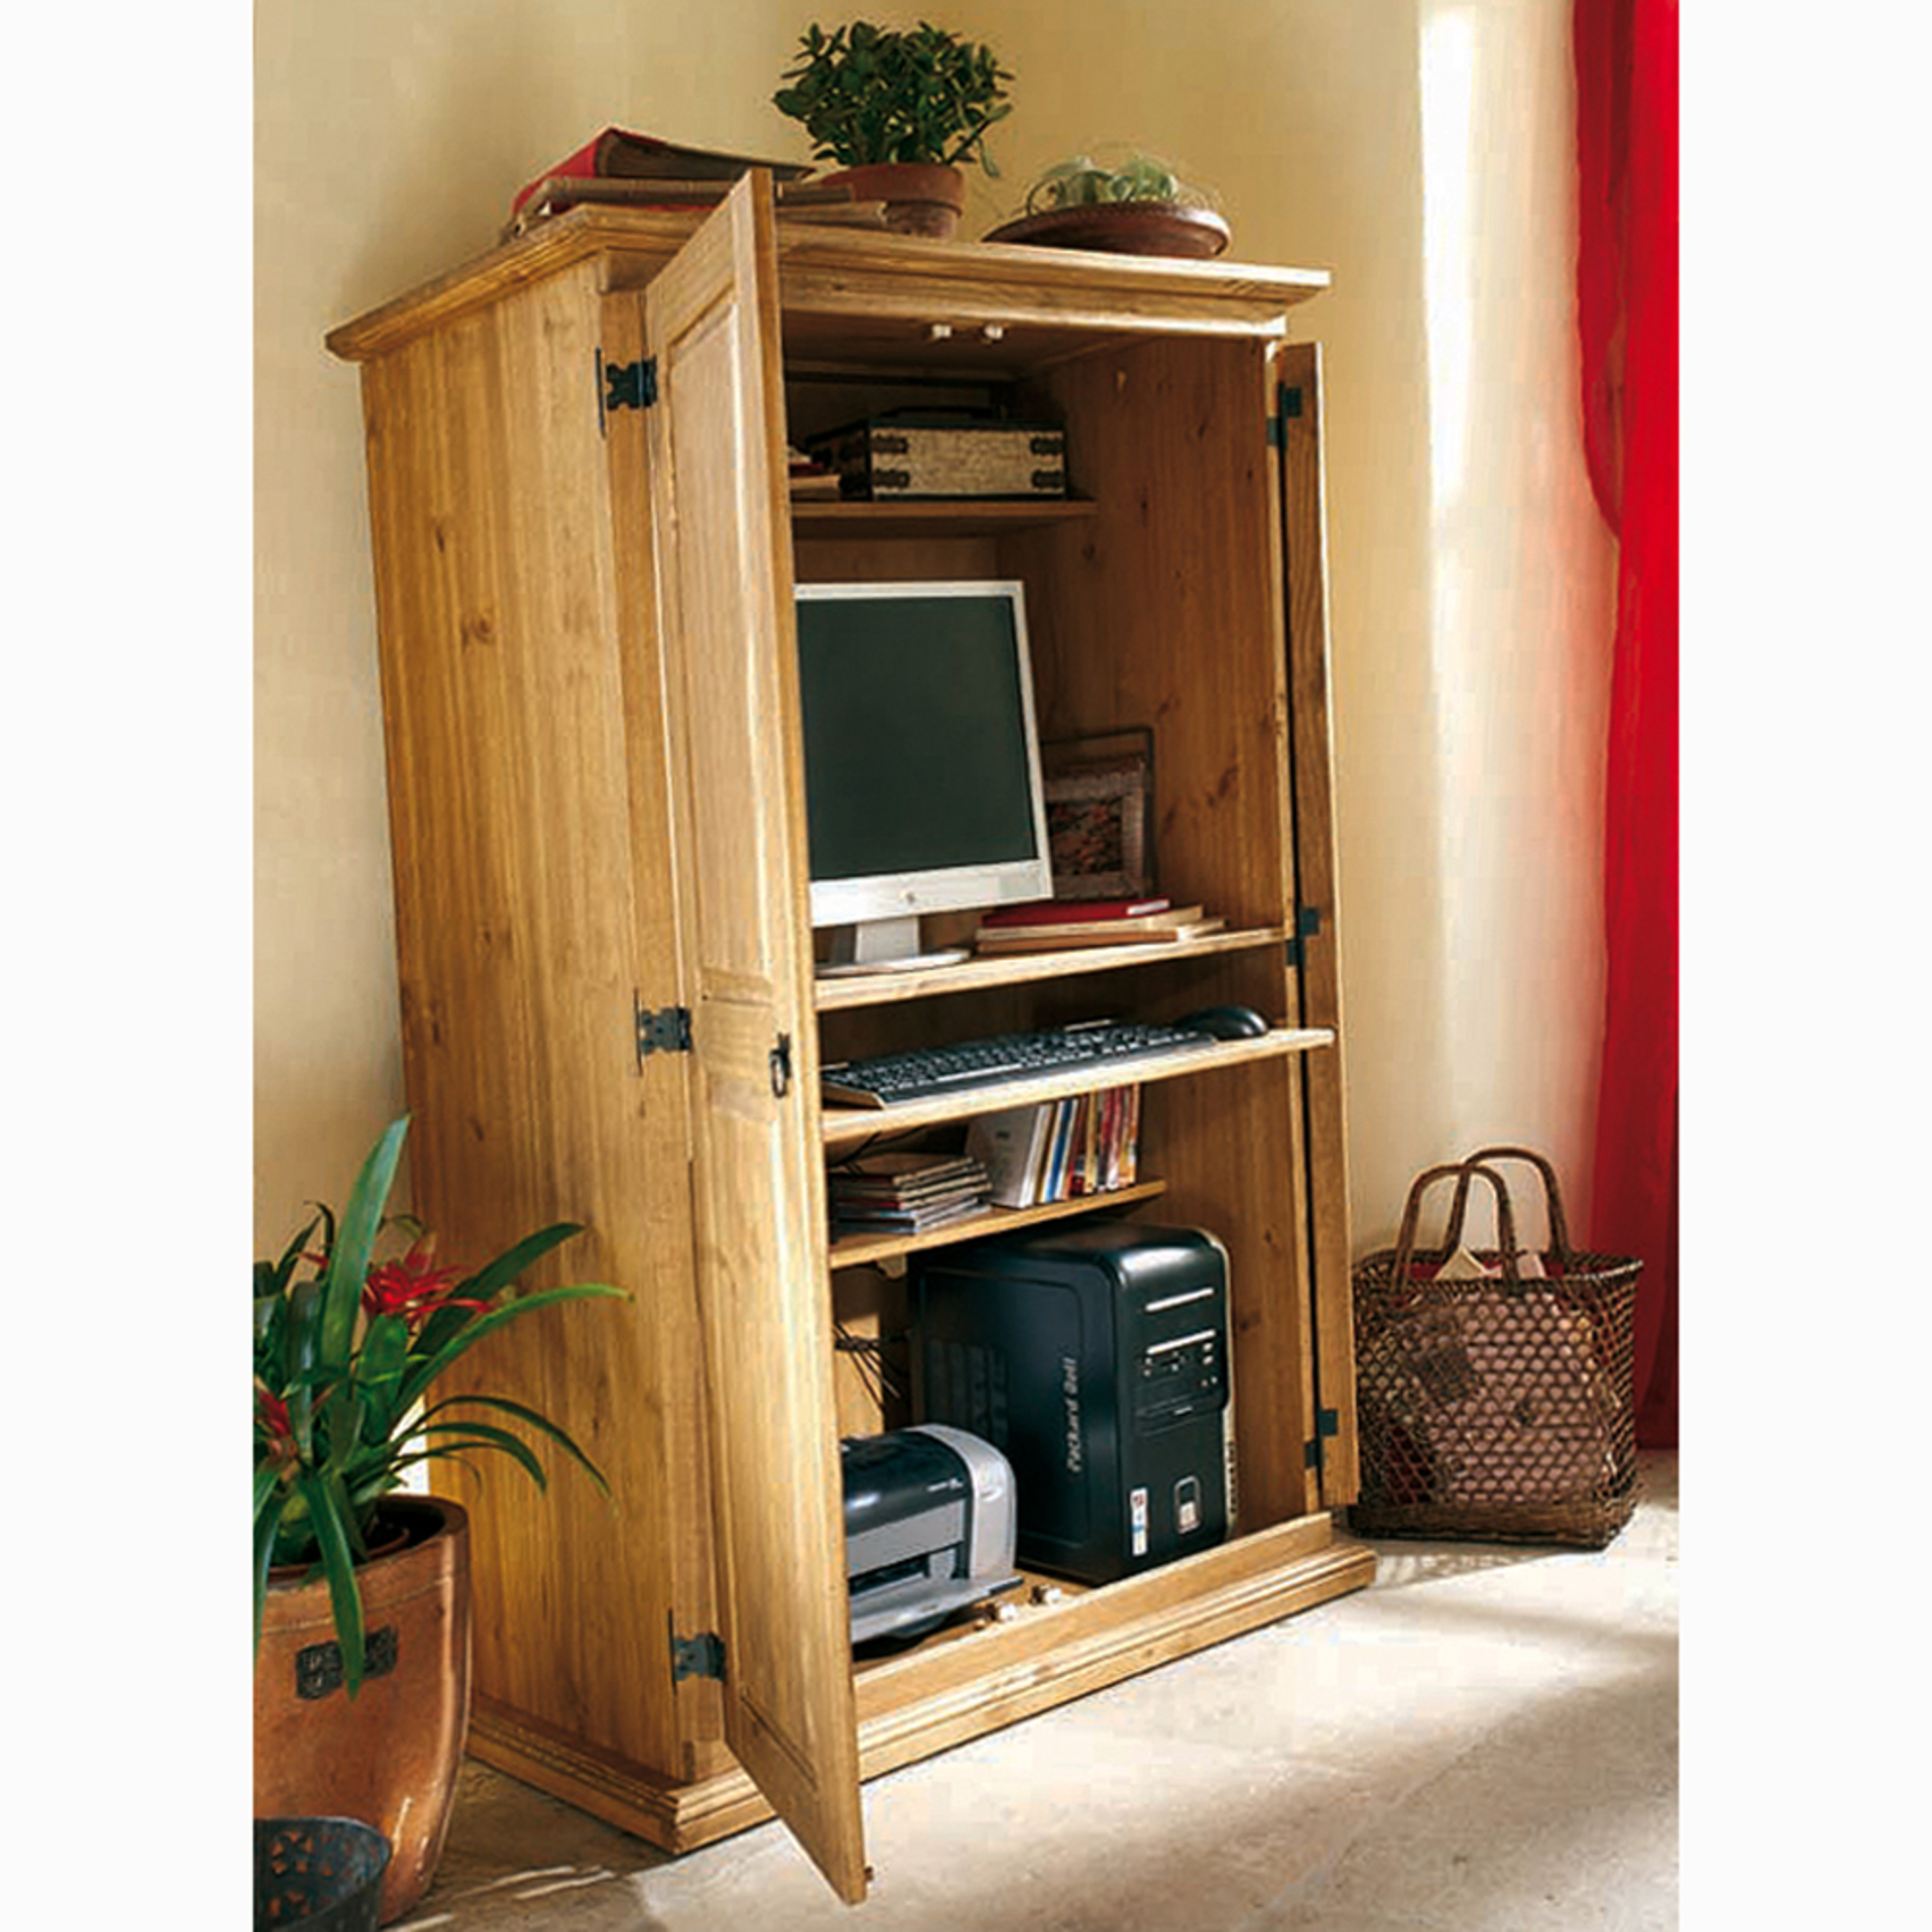 Armoire Meuble Tv - Meuble Tv Ou Armoire Micro Informatique El Patio Anniversaire 40 [mjhdah]https://images-na.ssl-images-amazon.com/images/I/81l5YU4SFPL._SL1500_.jpg